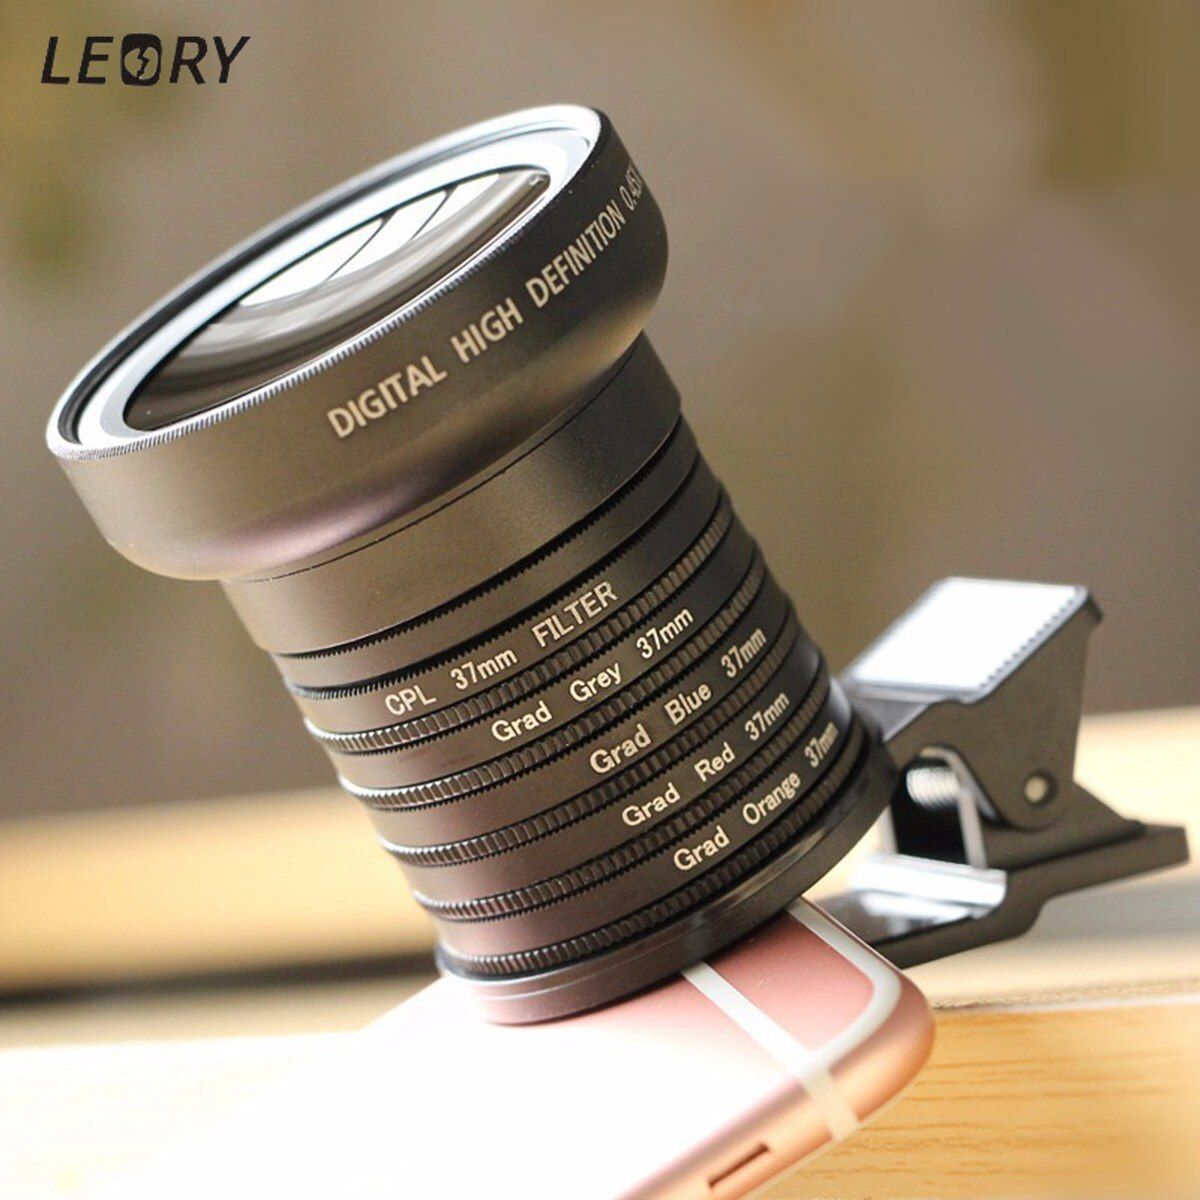 LEORY Universal 11 in 1 Wide Angle Macro Lens Gradient Filter Lens For Smart Phone HD Phone Camera Lens Mobile Phone Accessories